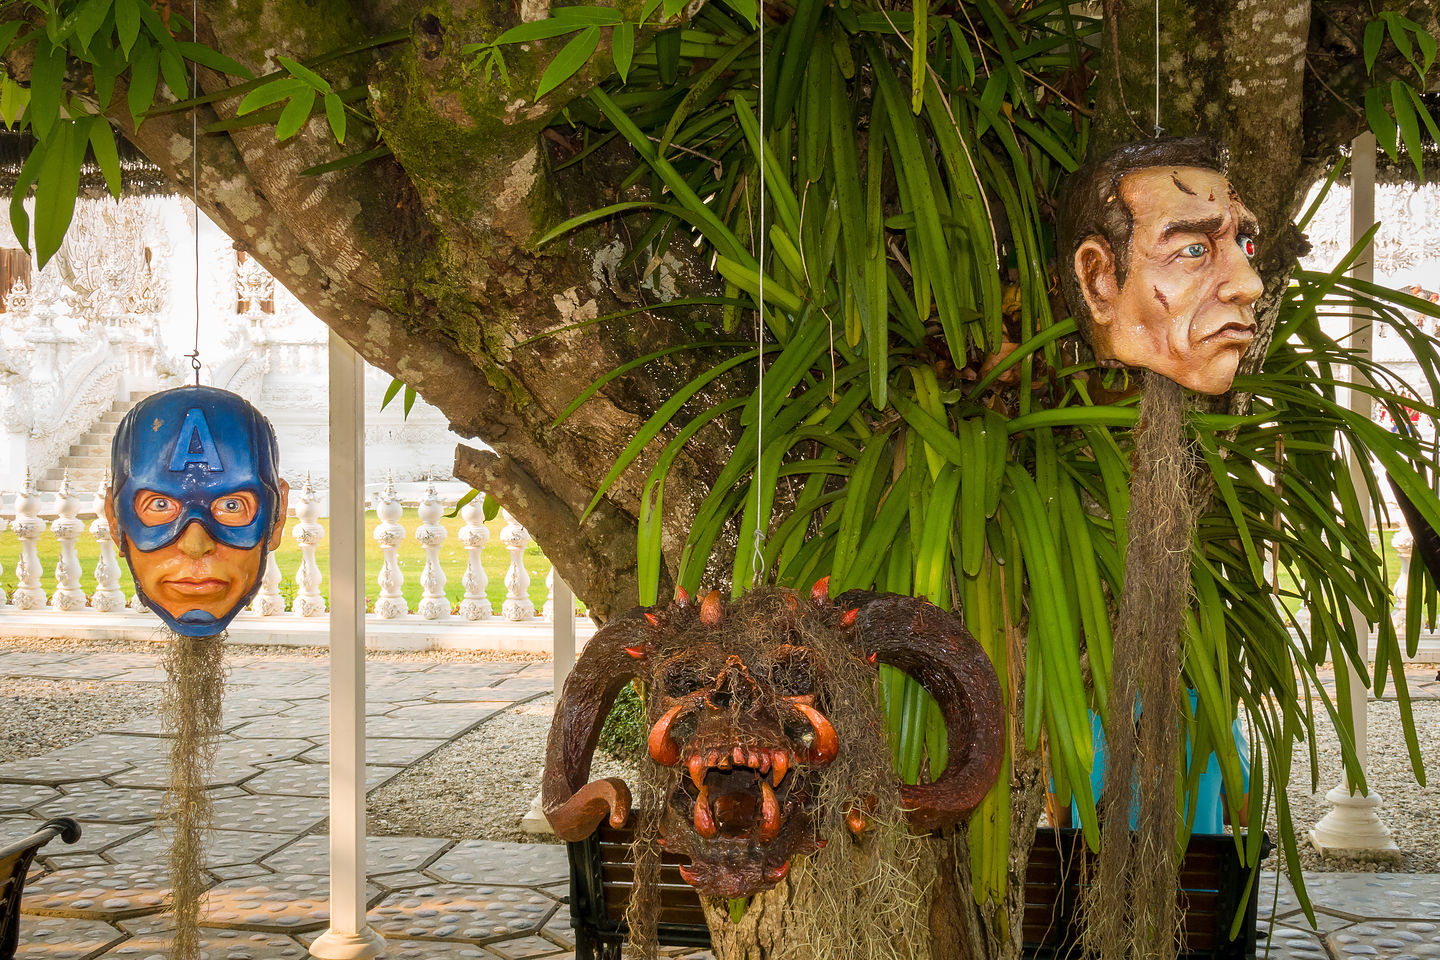 Creepy heads hanging from trees at the White Temple